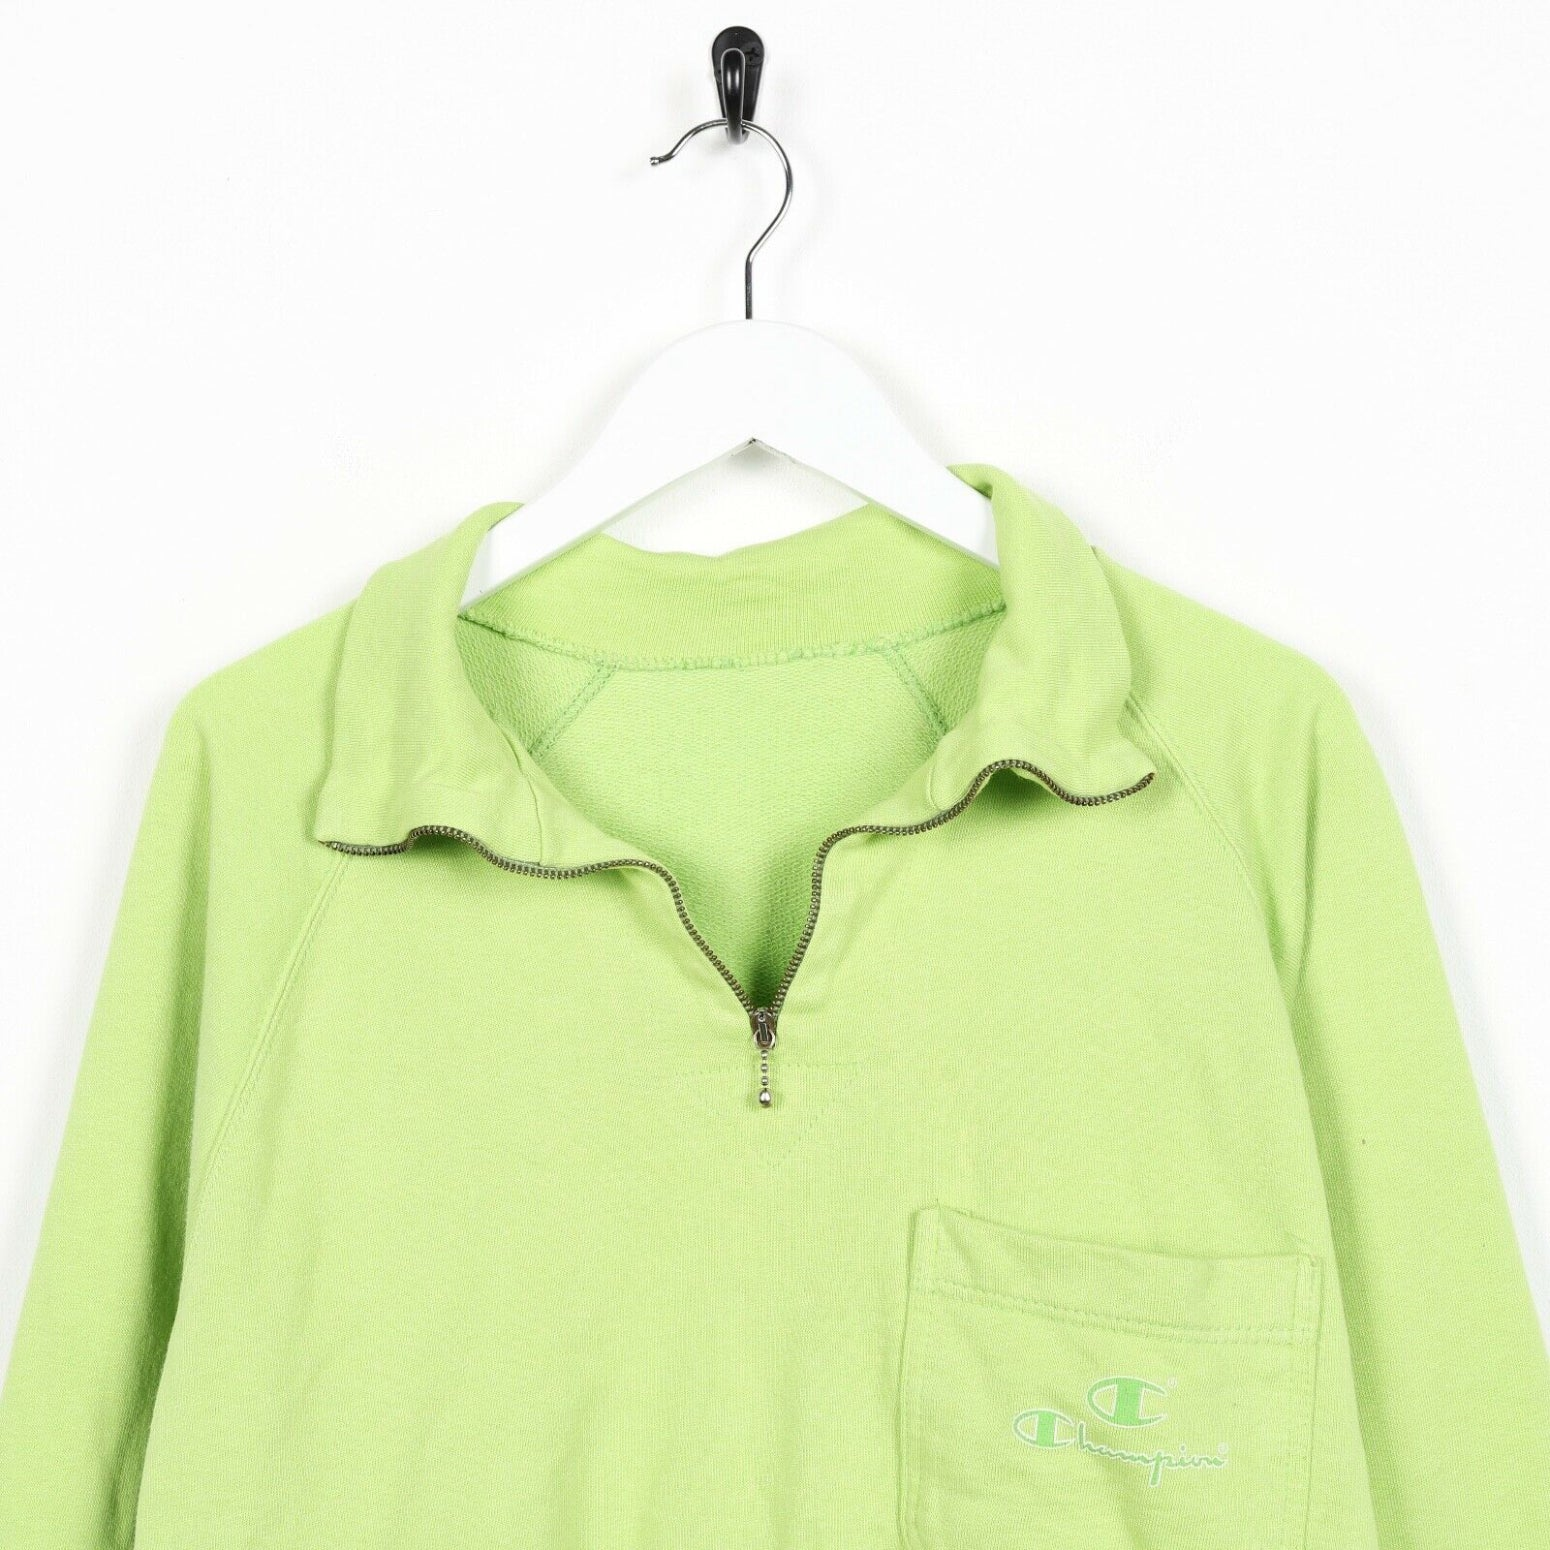 Vintage Women's CHAMPION Small Spell Out 1/4 Zip Sweatshirt Green small s